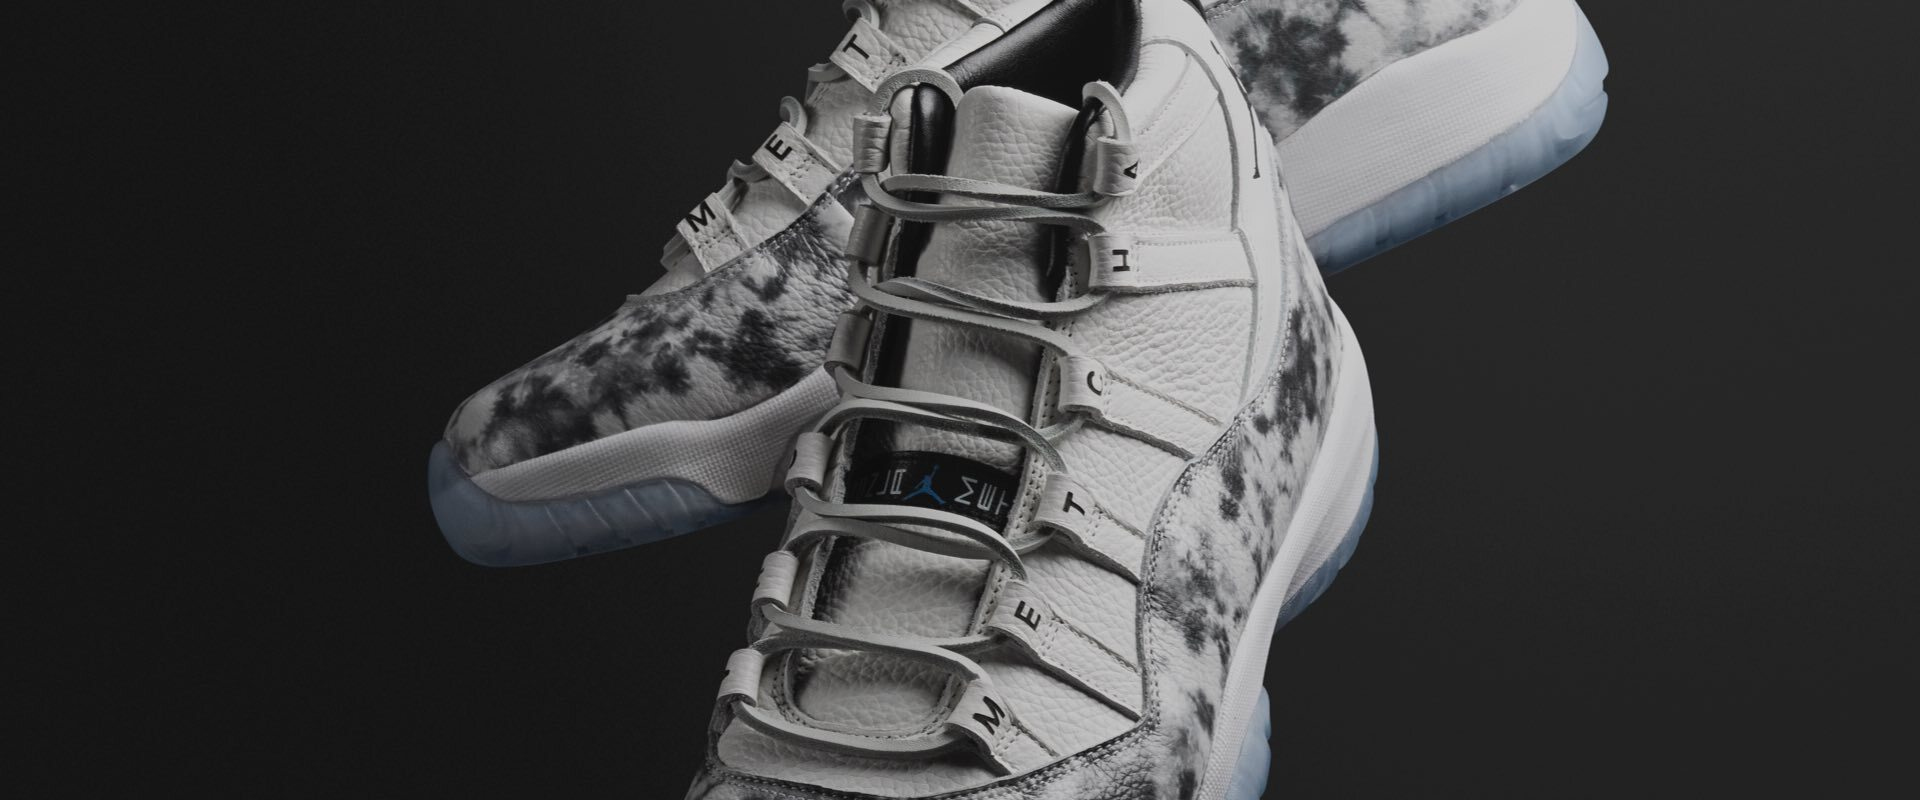 The AJ XI Concord by METCHA x The Shoe Surgeon is the 1st Air Jordan XI Concord custom design ever. & it can be yours.